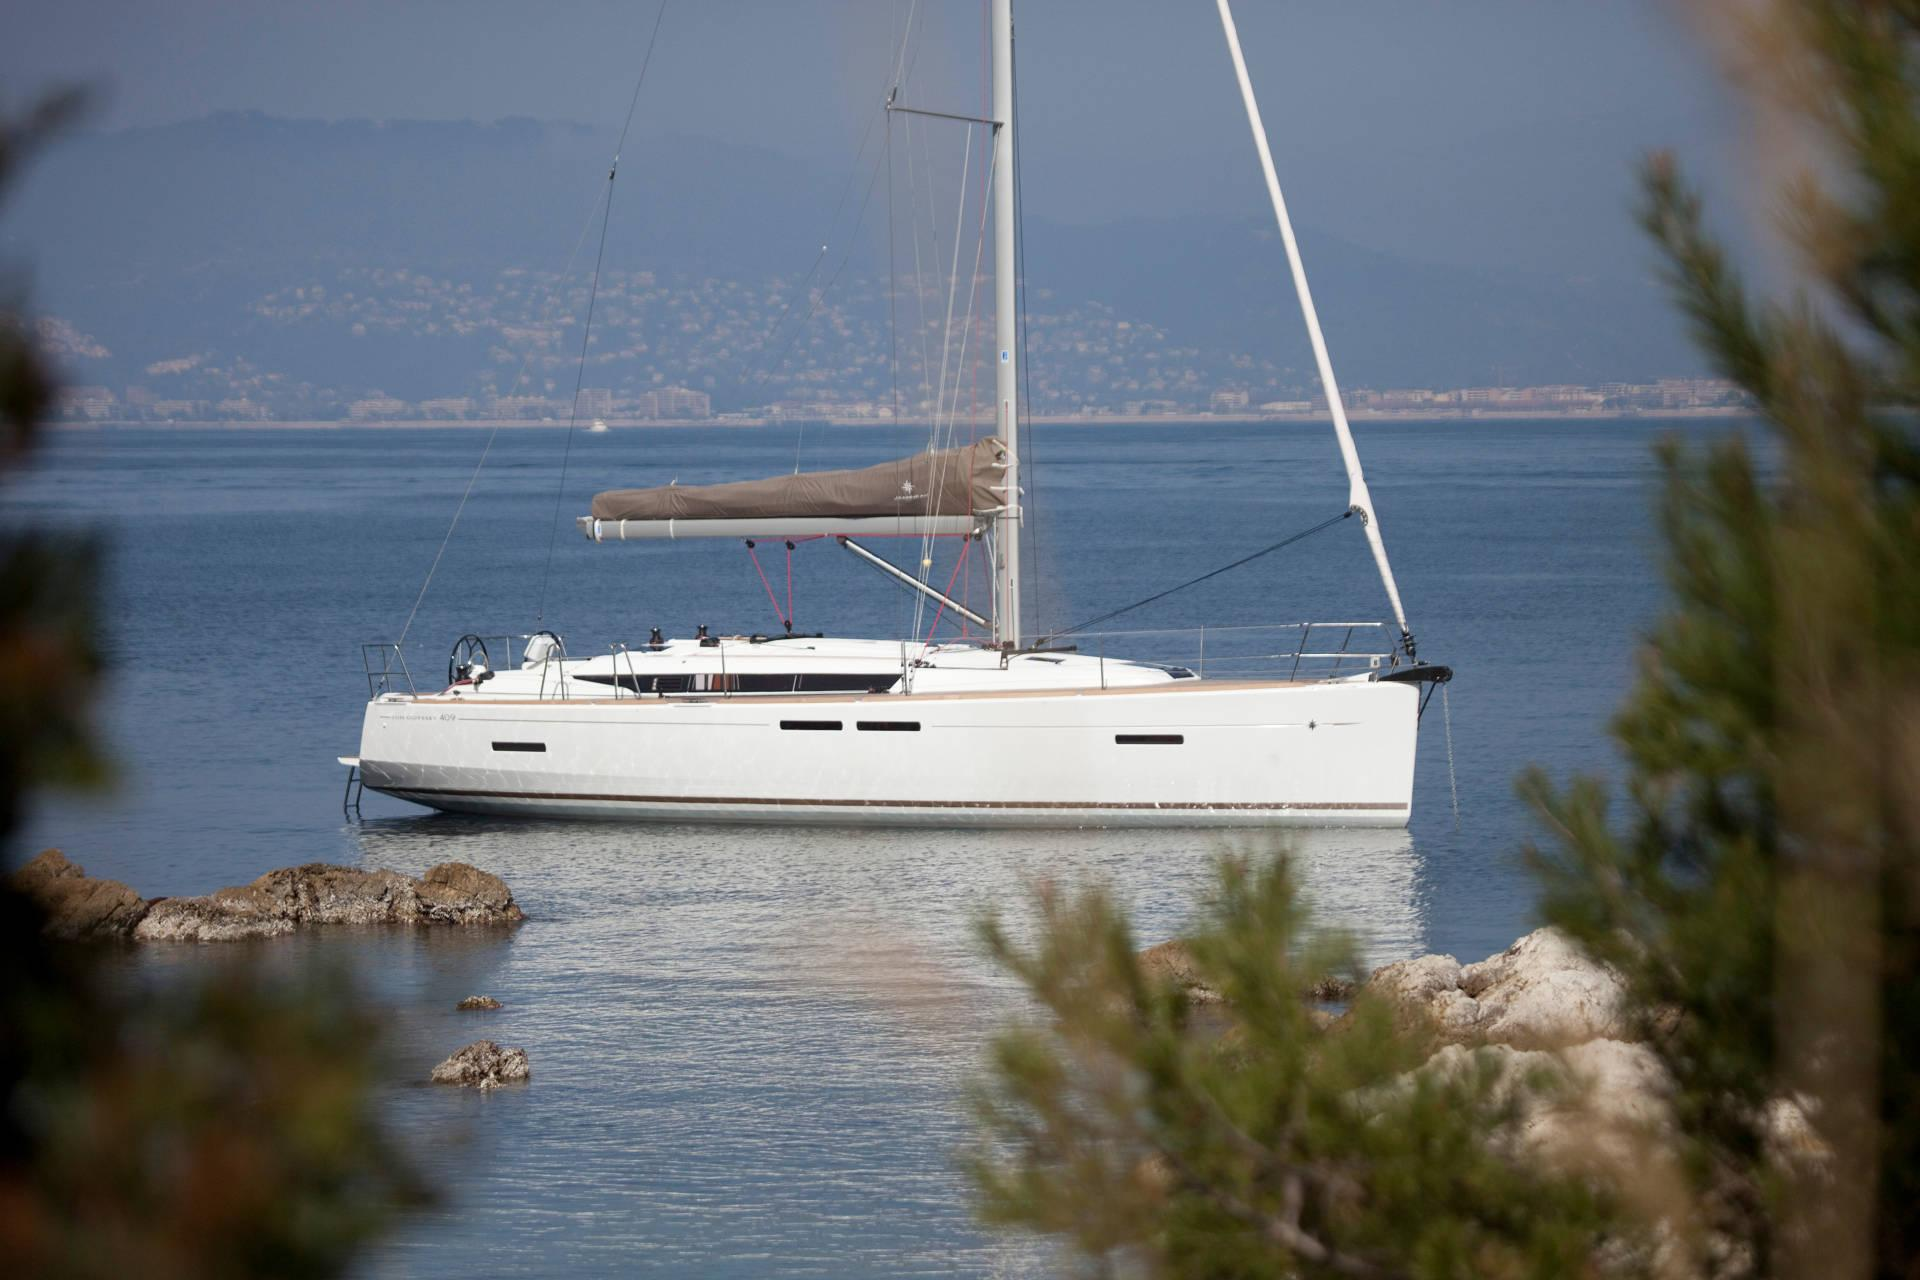 Sailing Yacht Charter 3 Days | Elba and Capraia Islands | Tuscan Archipelago | Italy